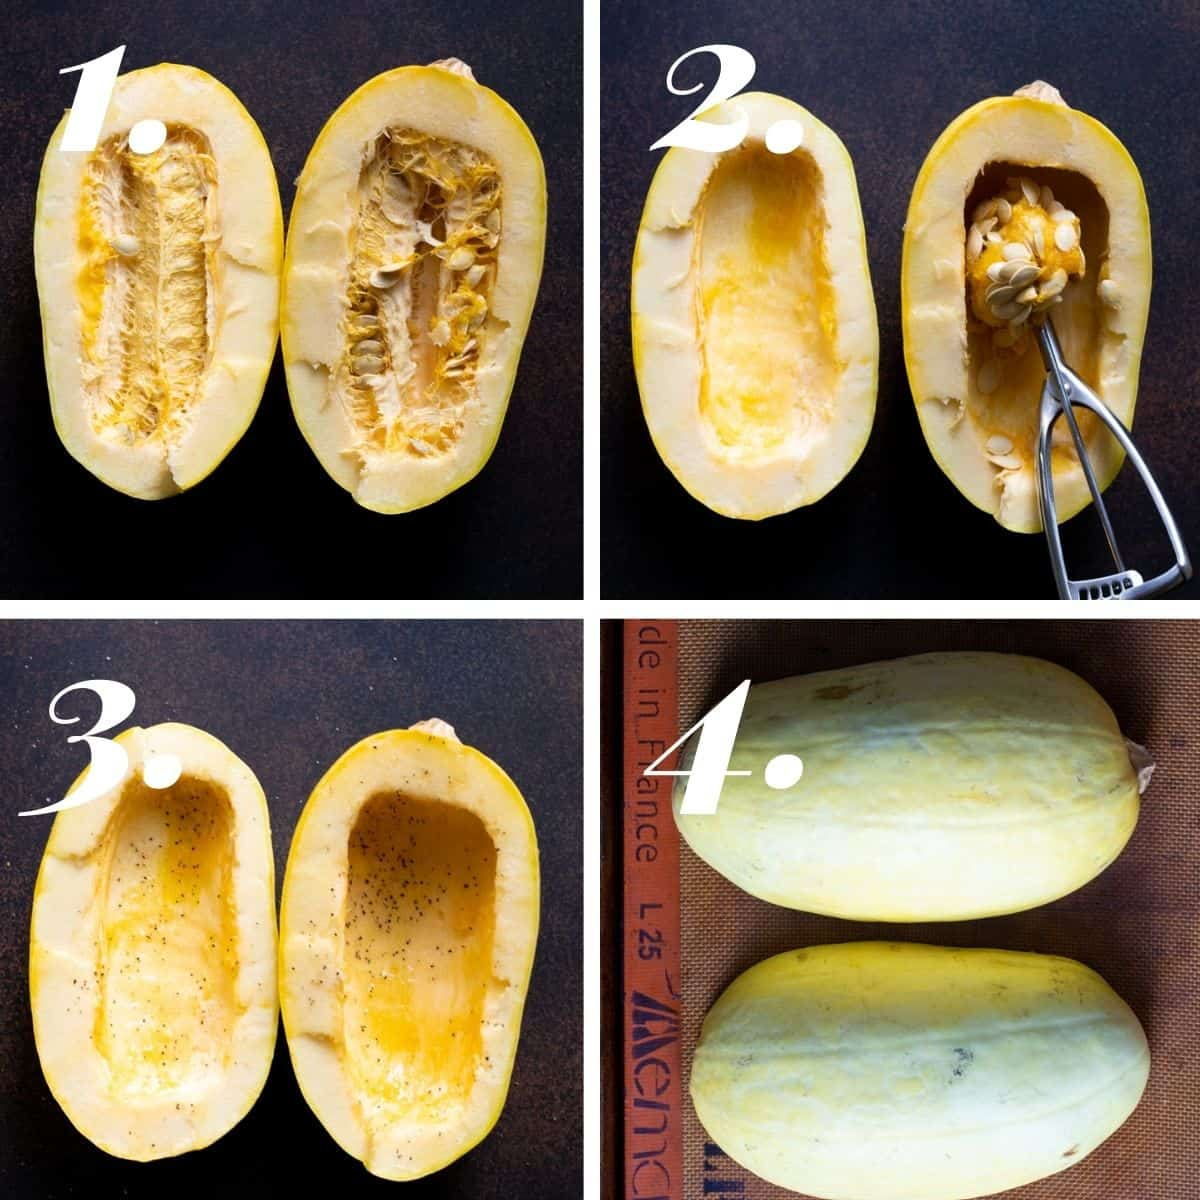 Steps showing how to prepare the spaghetti squash for roasting.